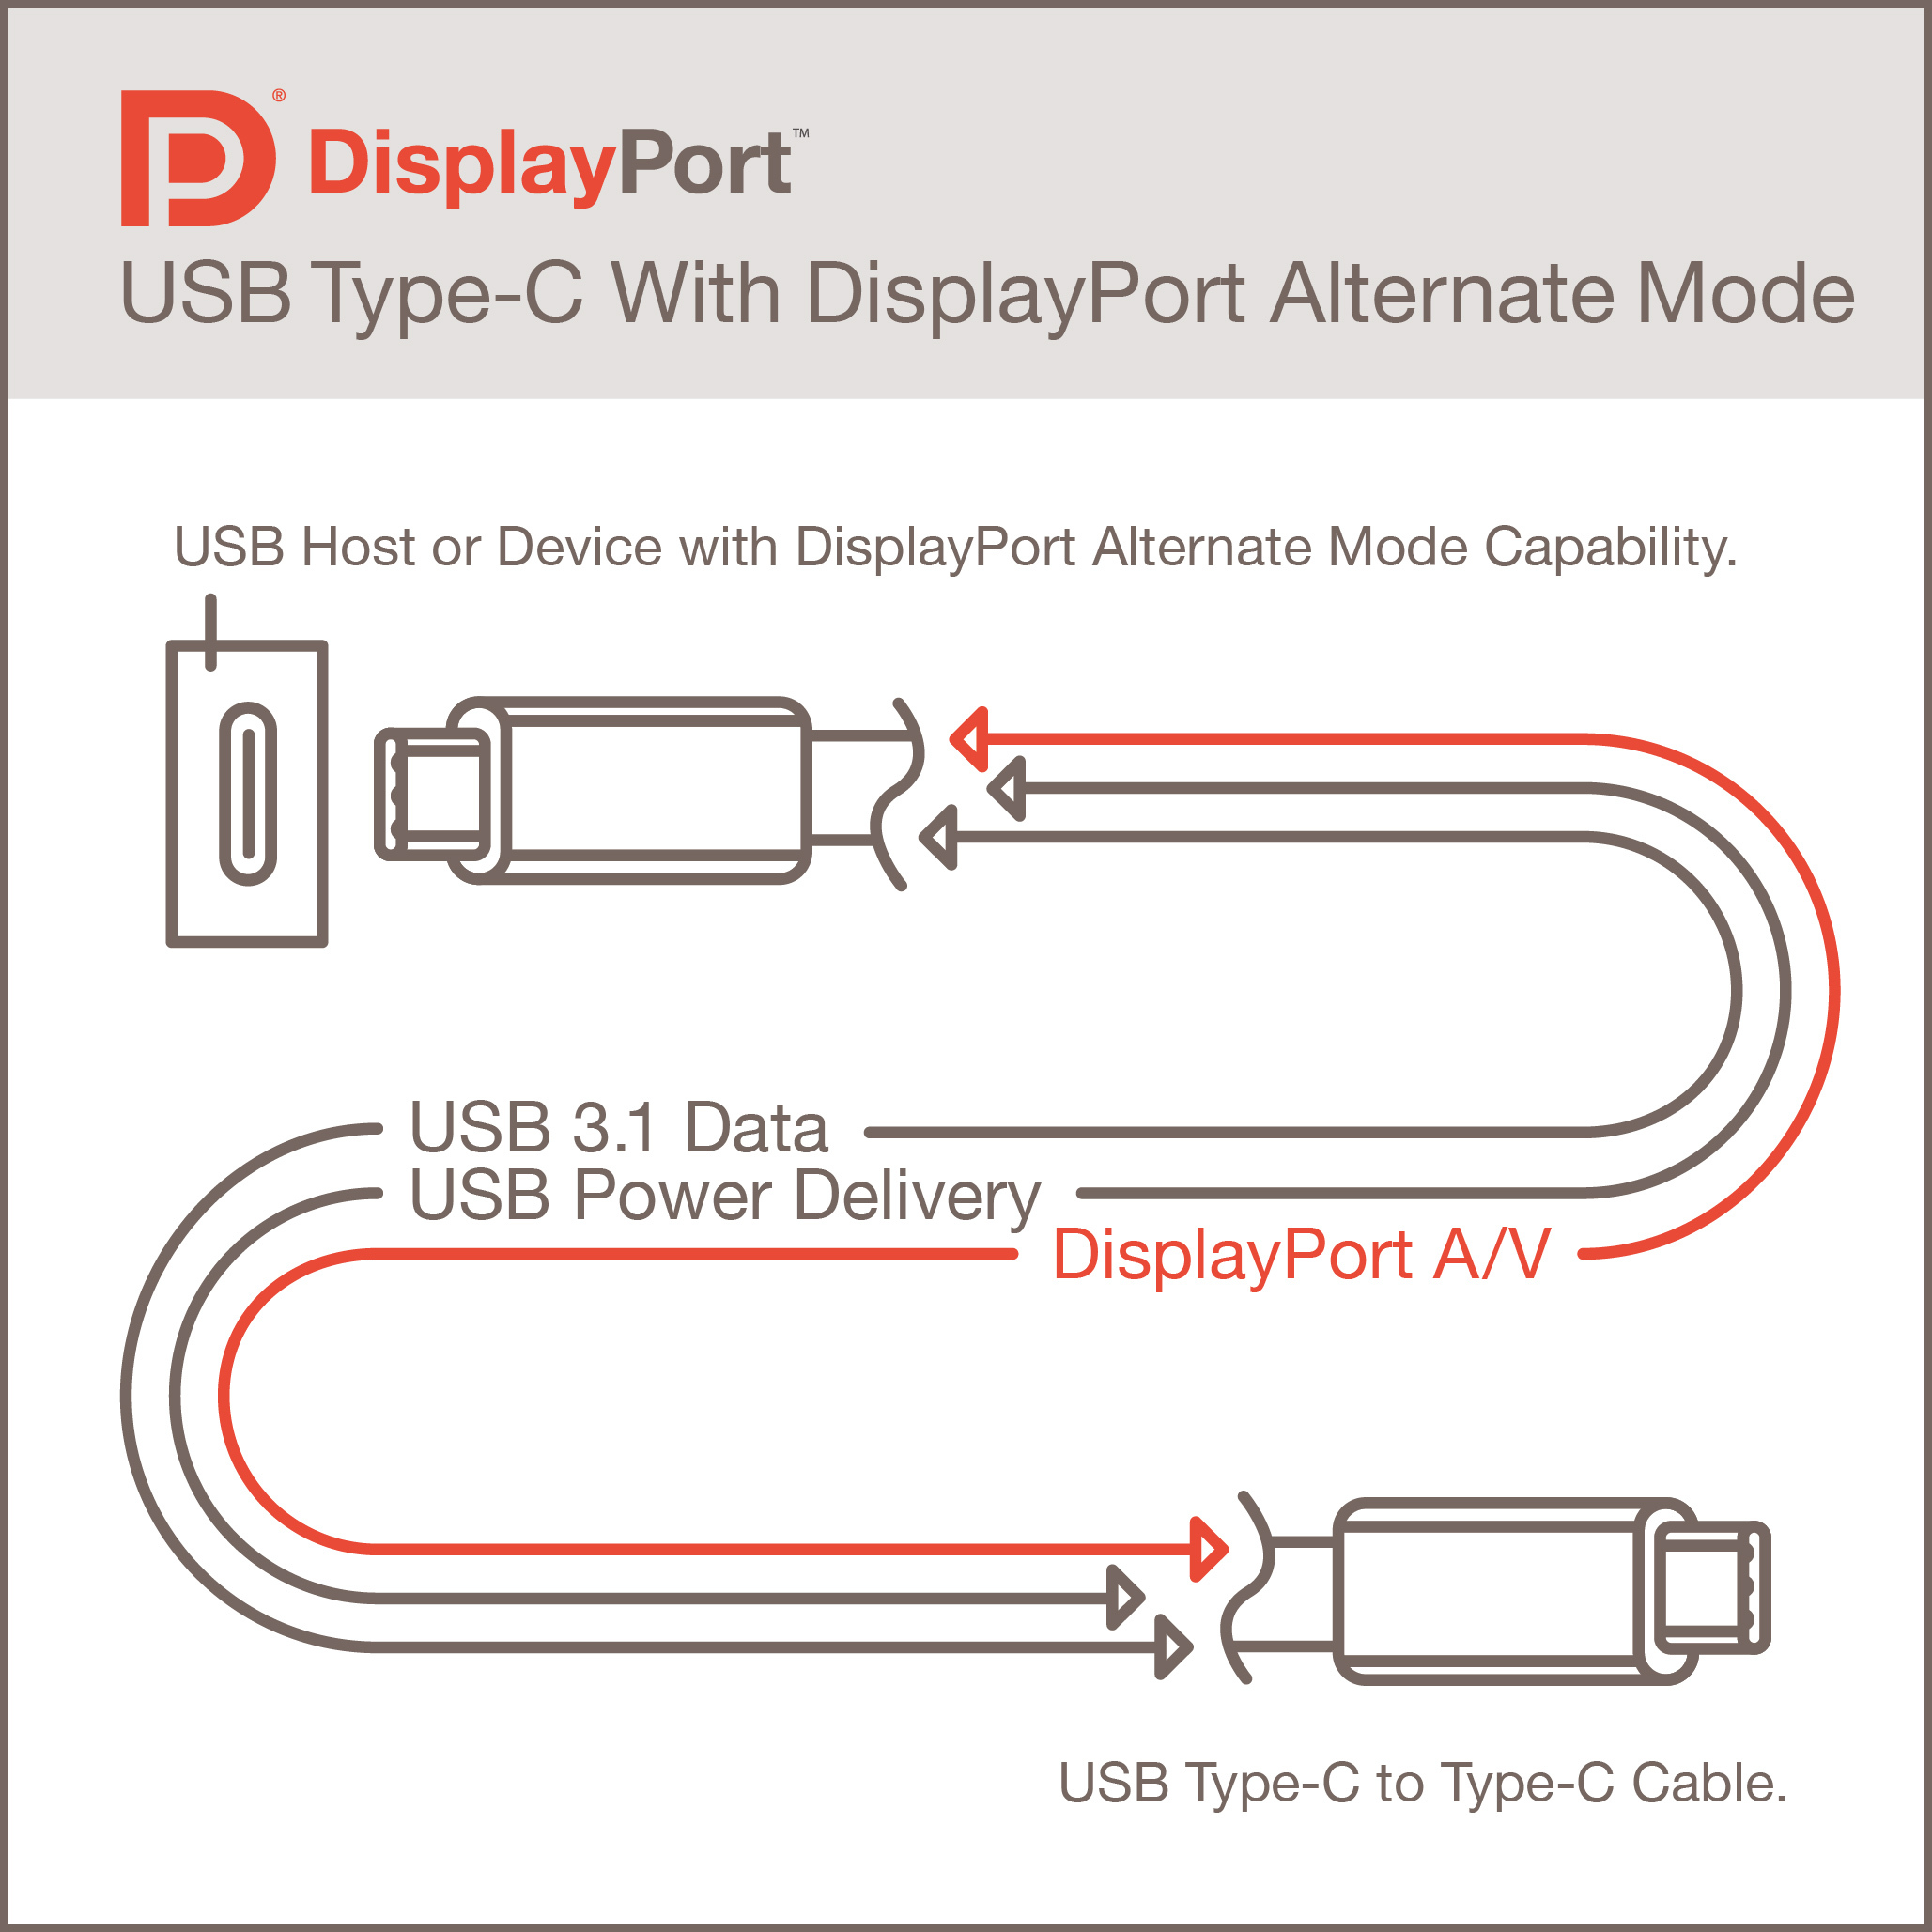 VESA® Brings DisplayPort™ to New USB Type-C Connector | Business Wire